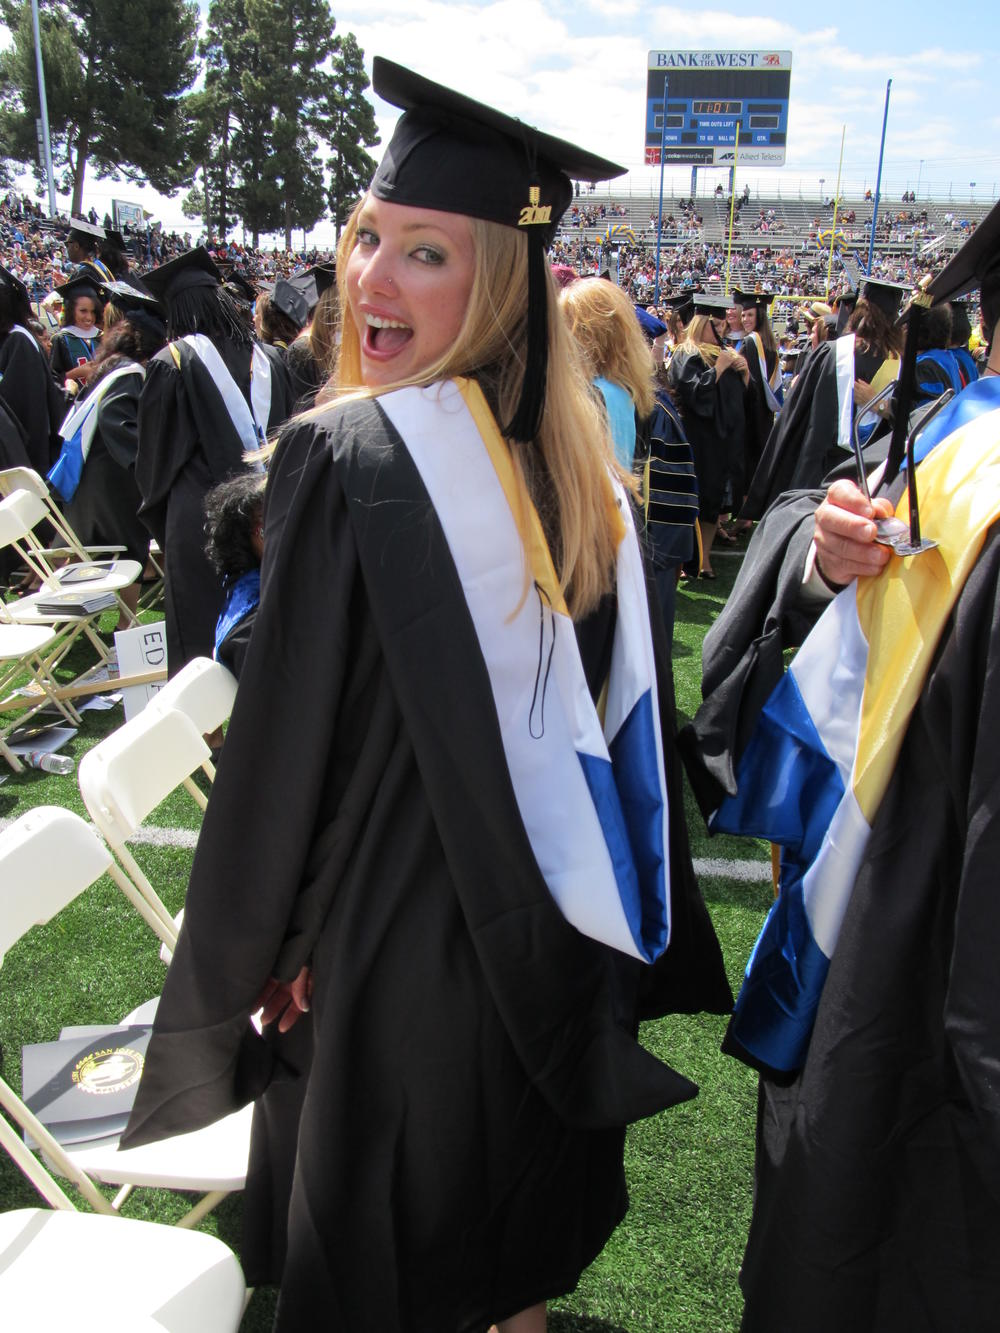 Ms. Vanderveen SJSU Graduation picture